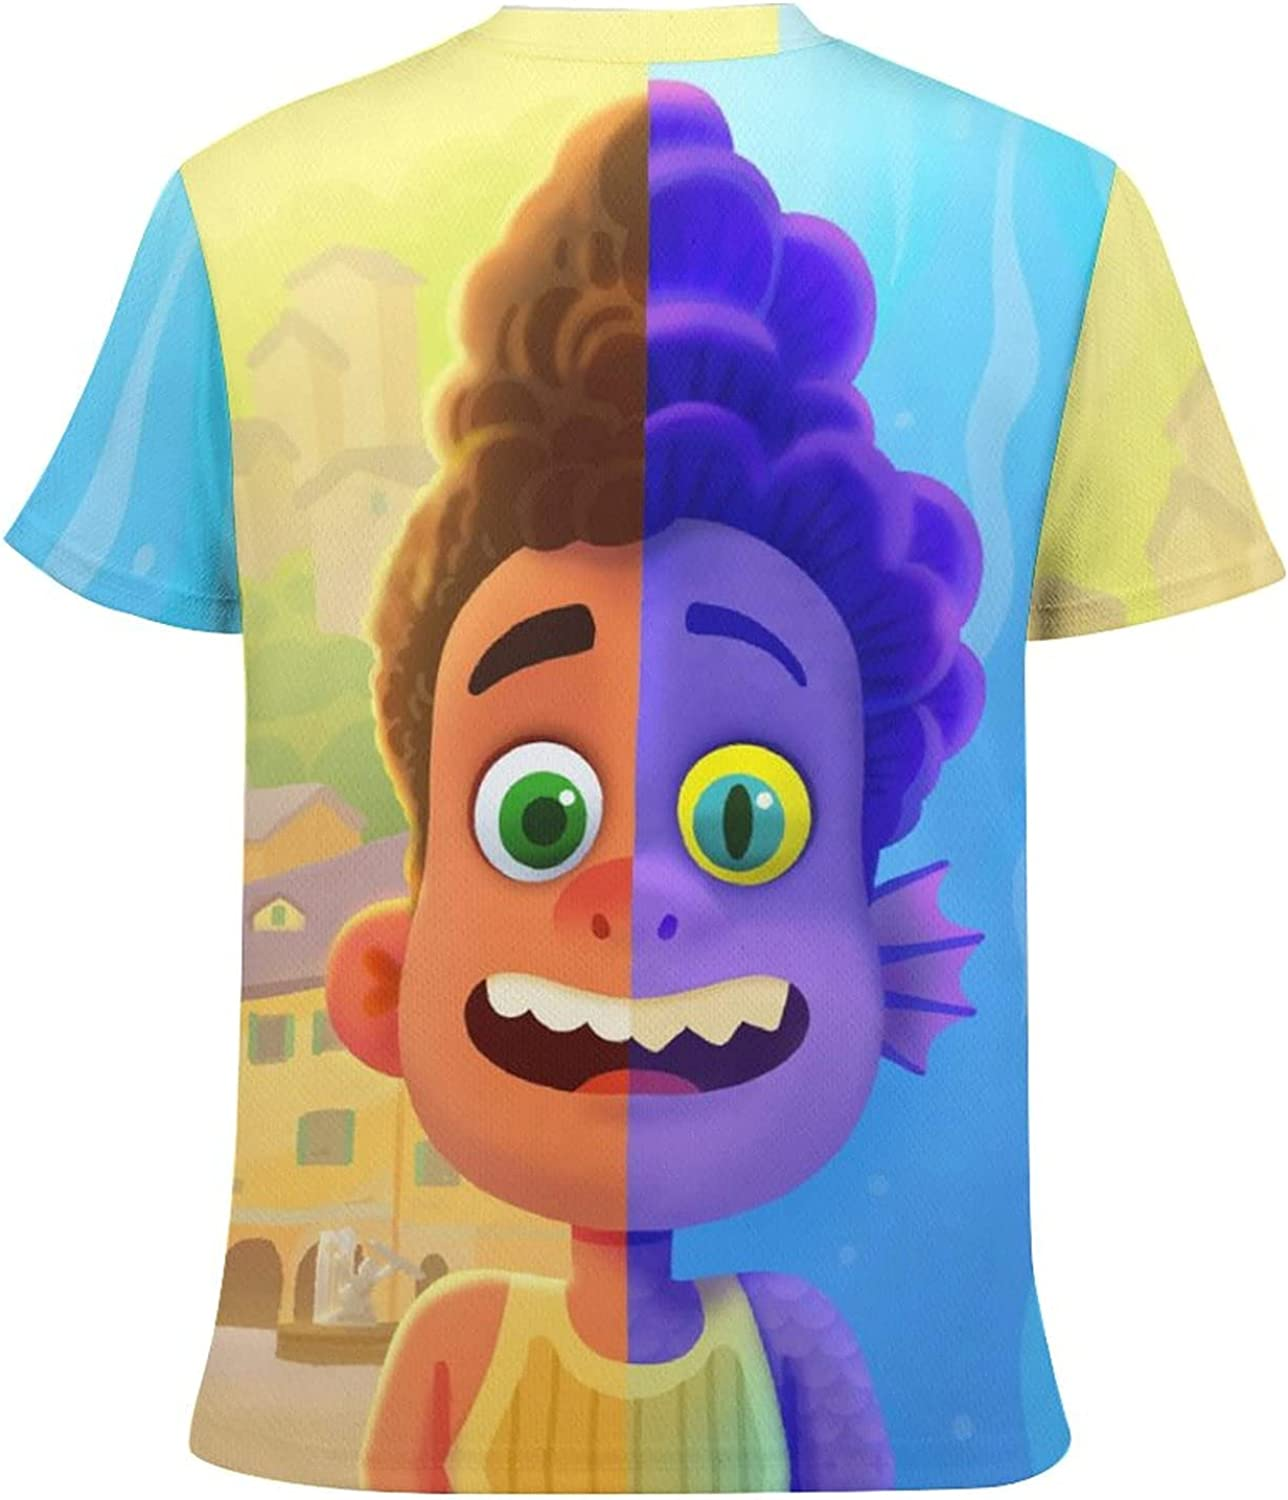 Kid's Novelty Graphic Round Neck Short Sleeve T-Shirt Cozy Trendy Tee Shirts Tops for Boys L